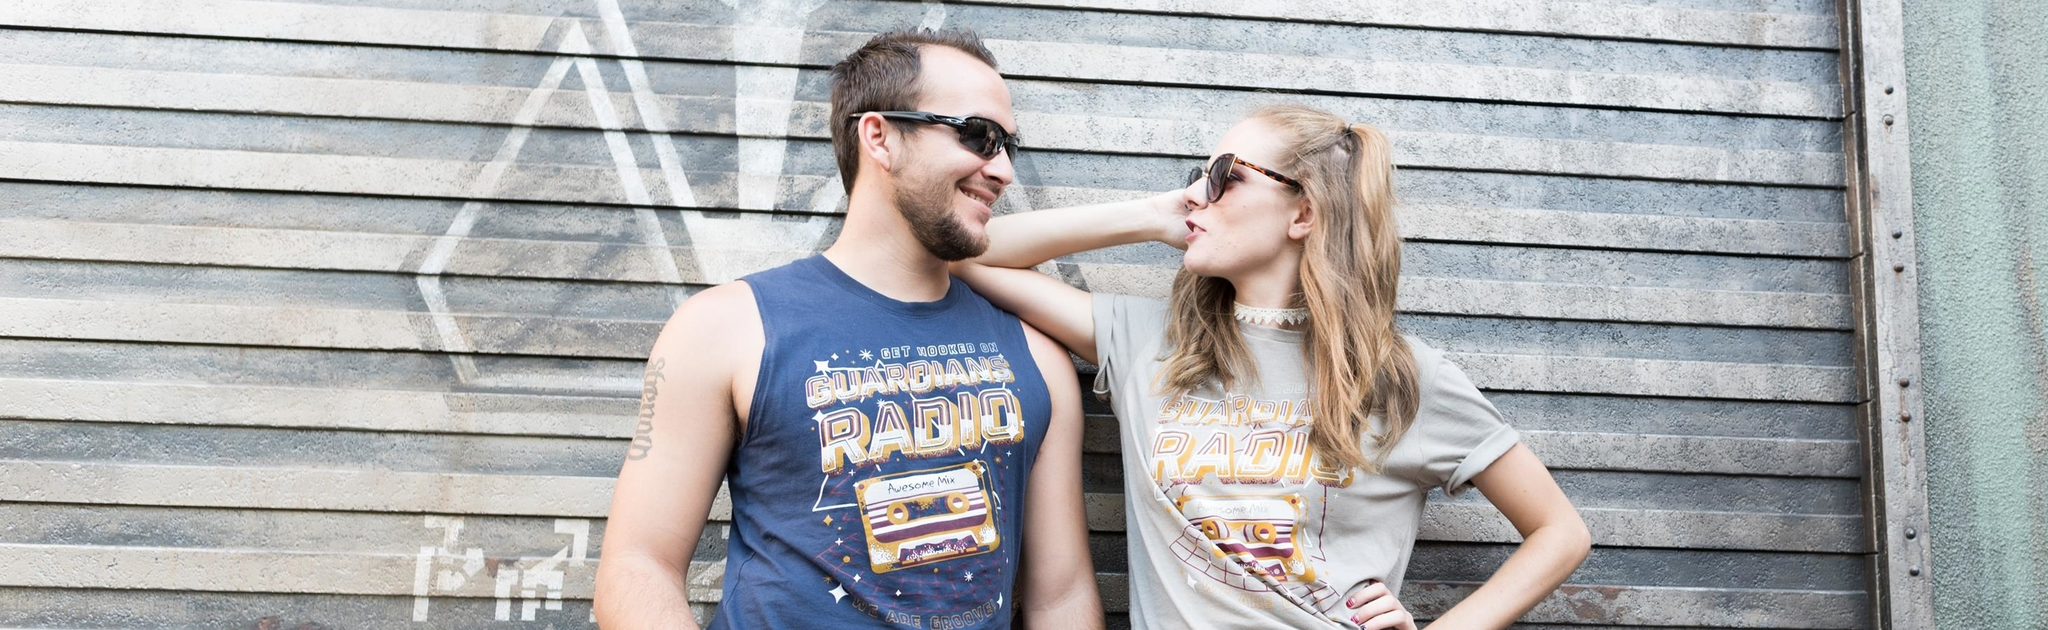 "Donna and Cody of Brand By You outside Guardians of the Galaxy: Mission Breakout at the Tivan Wall sporting their ""Guardians Radio"" tees - designed and printed for and by Brand By You. We hope to be your destination for fun, clever, and unique park day apparel that has a Disney flare!"